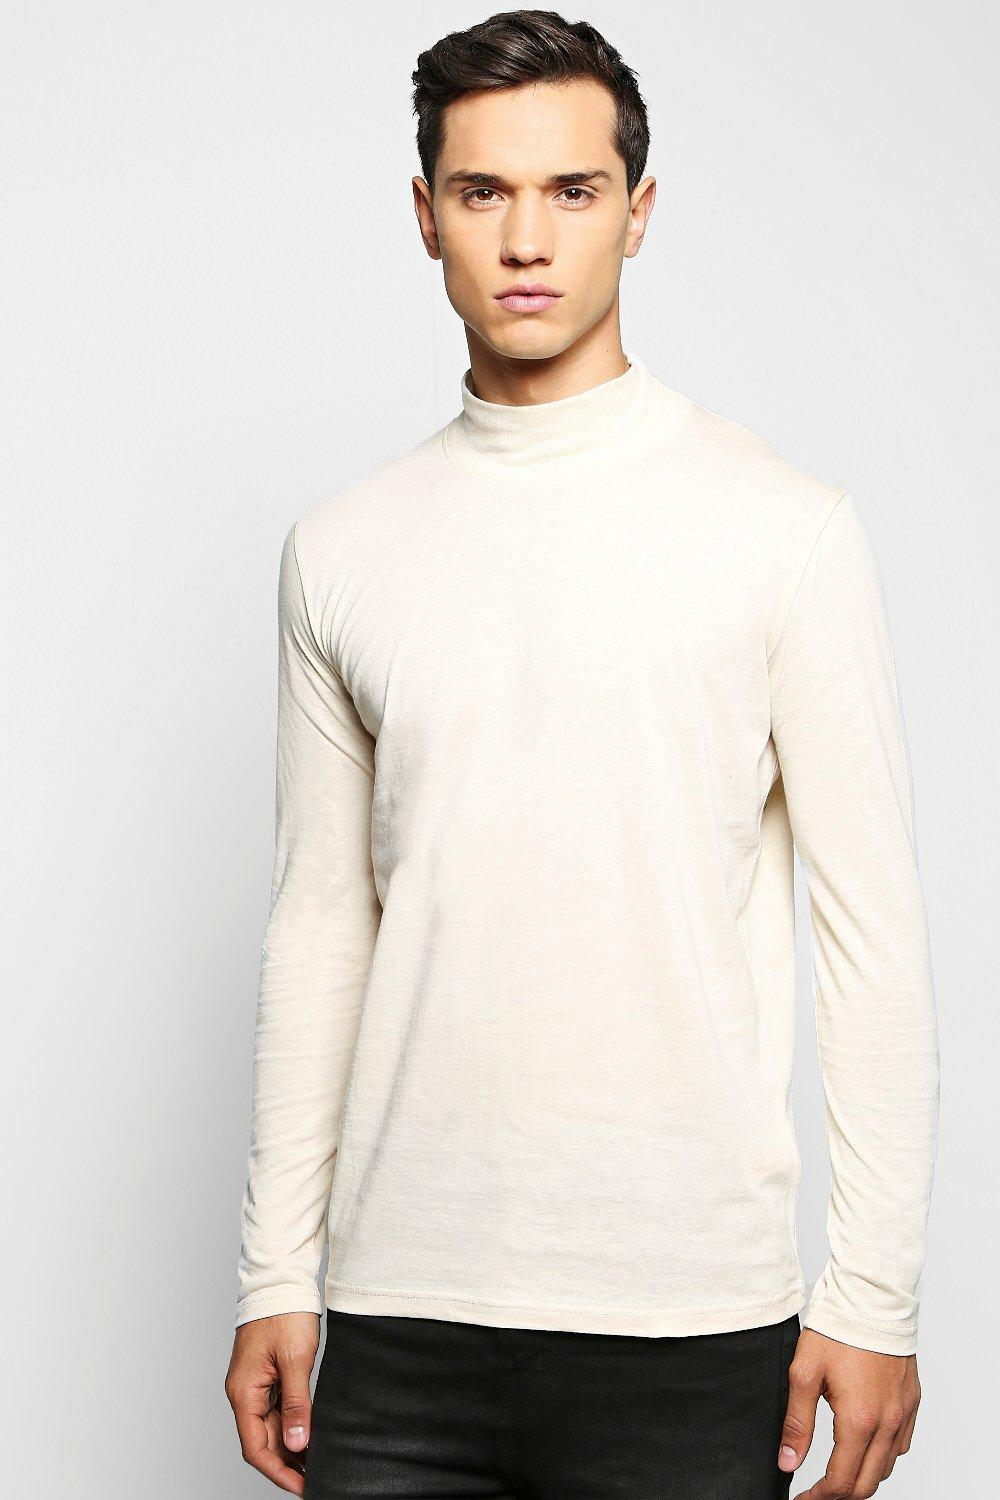 boohoo mens long sleeve high neck t shirt